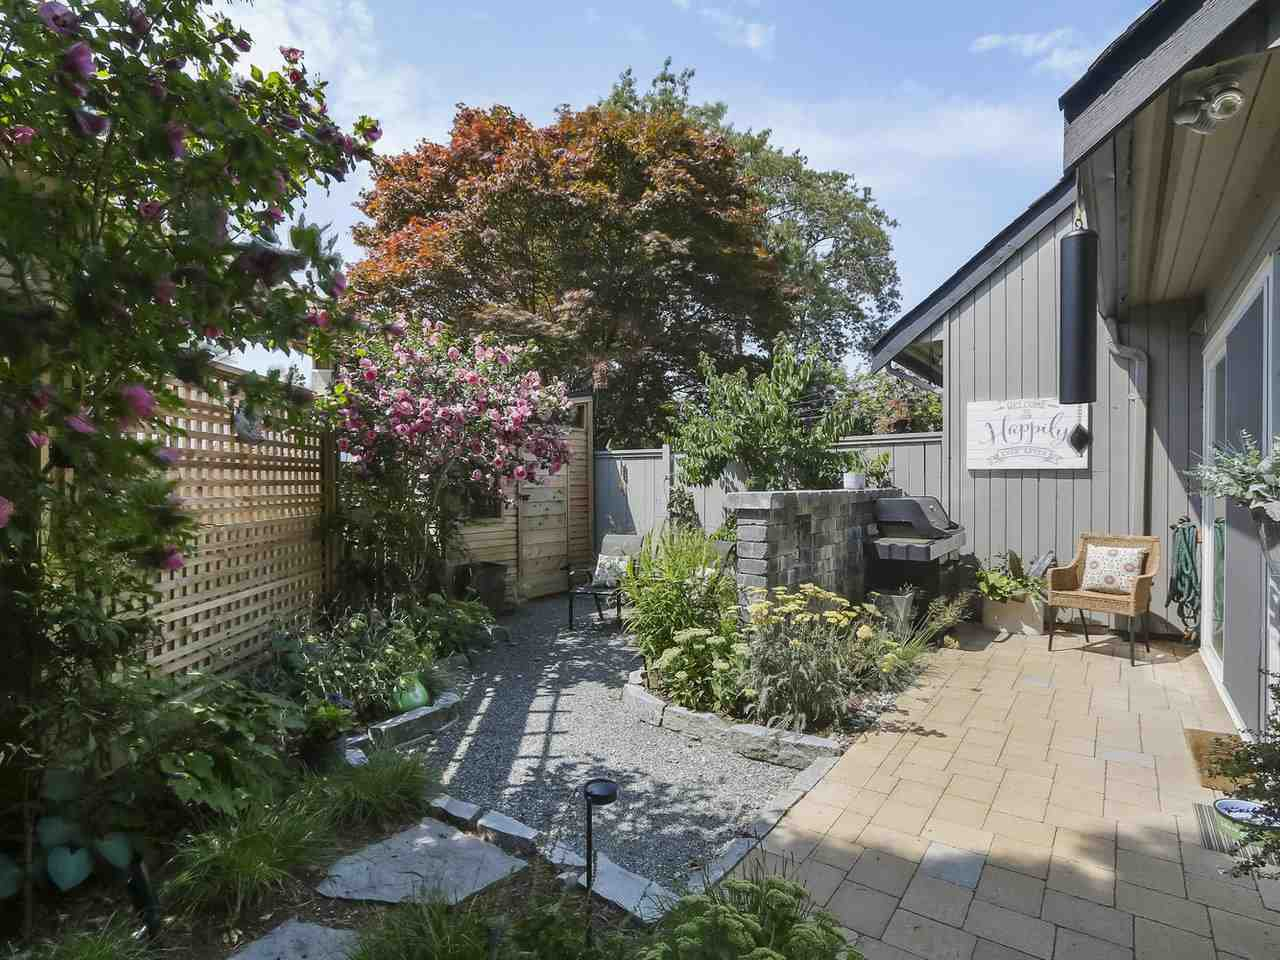 Photo 18: Photos: 4827 CENTRAL AVENUE in Delta: Hawthorne Townhouse for sale (Ladner)  : MLS®# R2391825